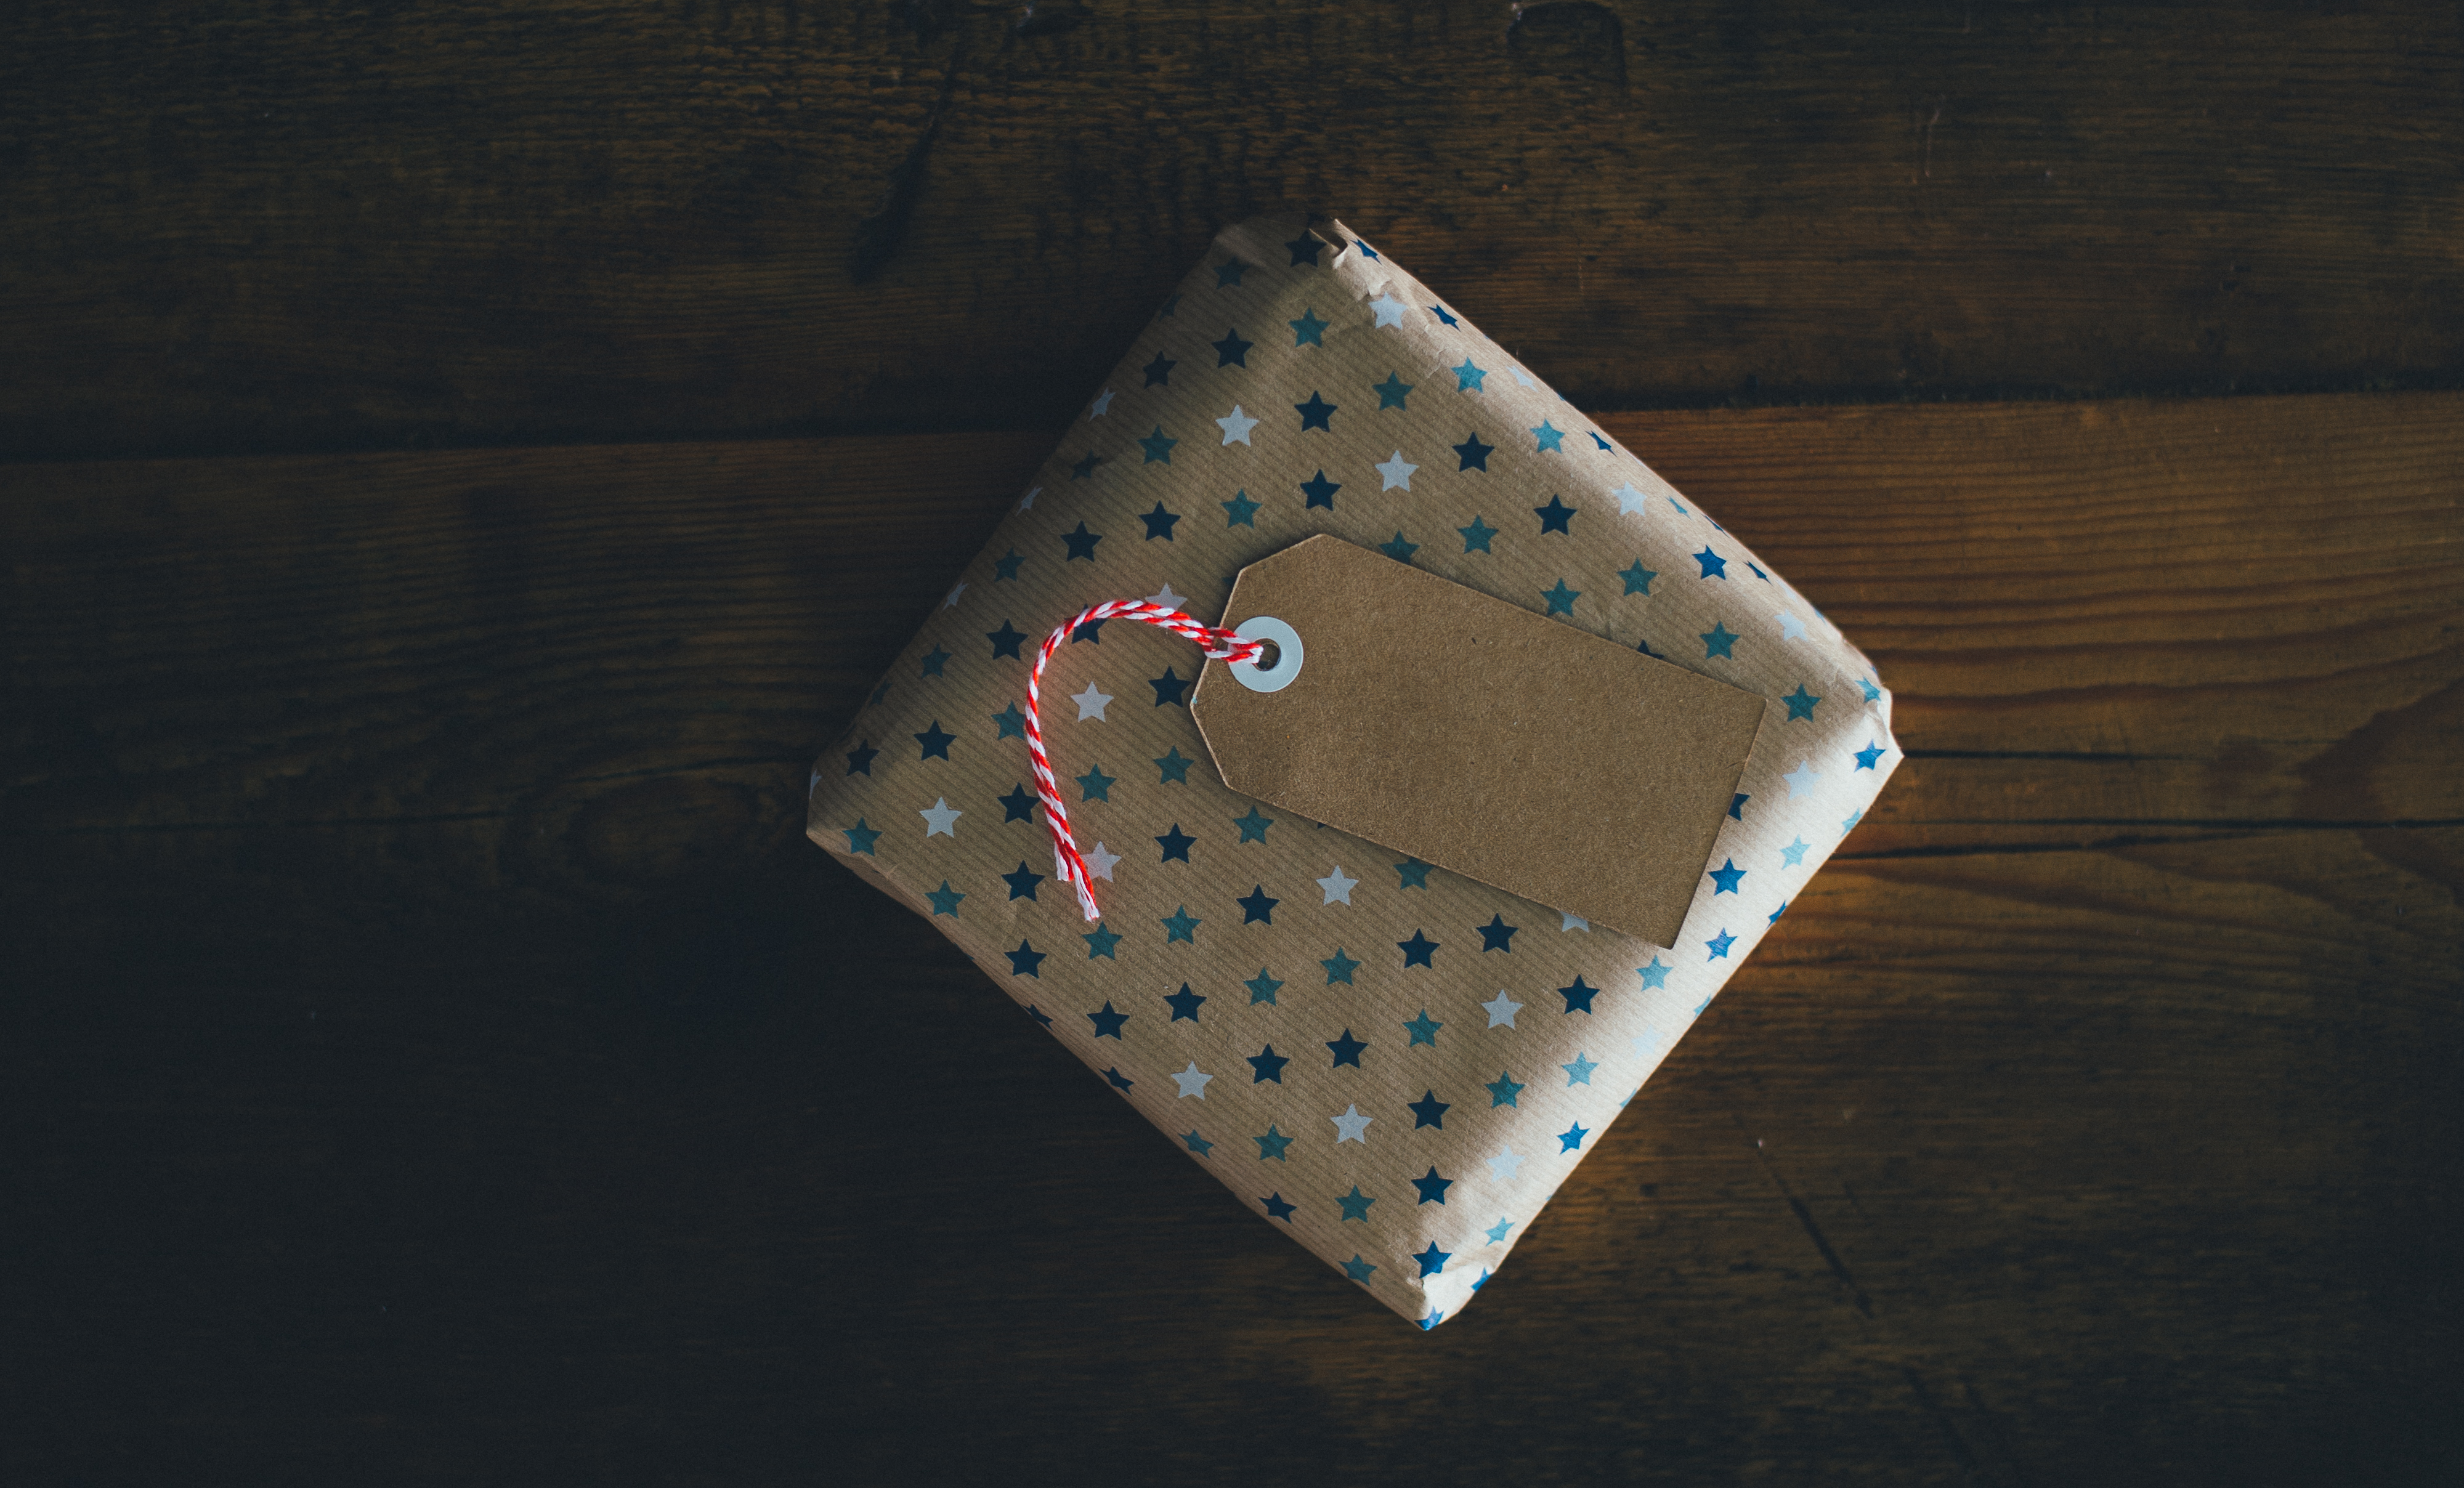 An original Christmas gift? Read this if you need inspiration…